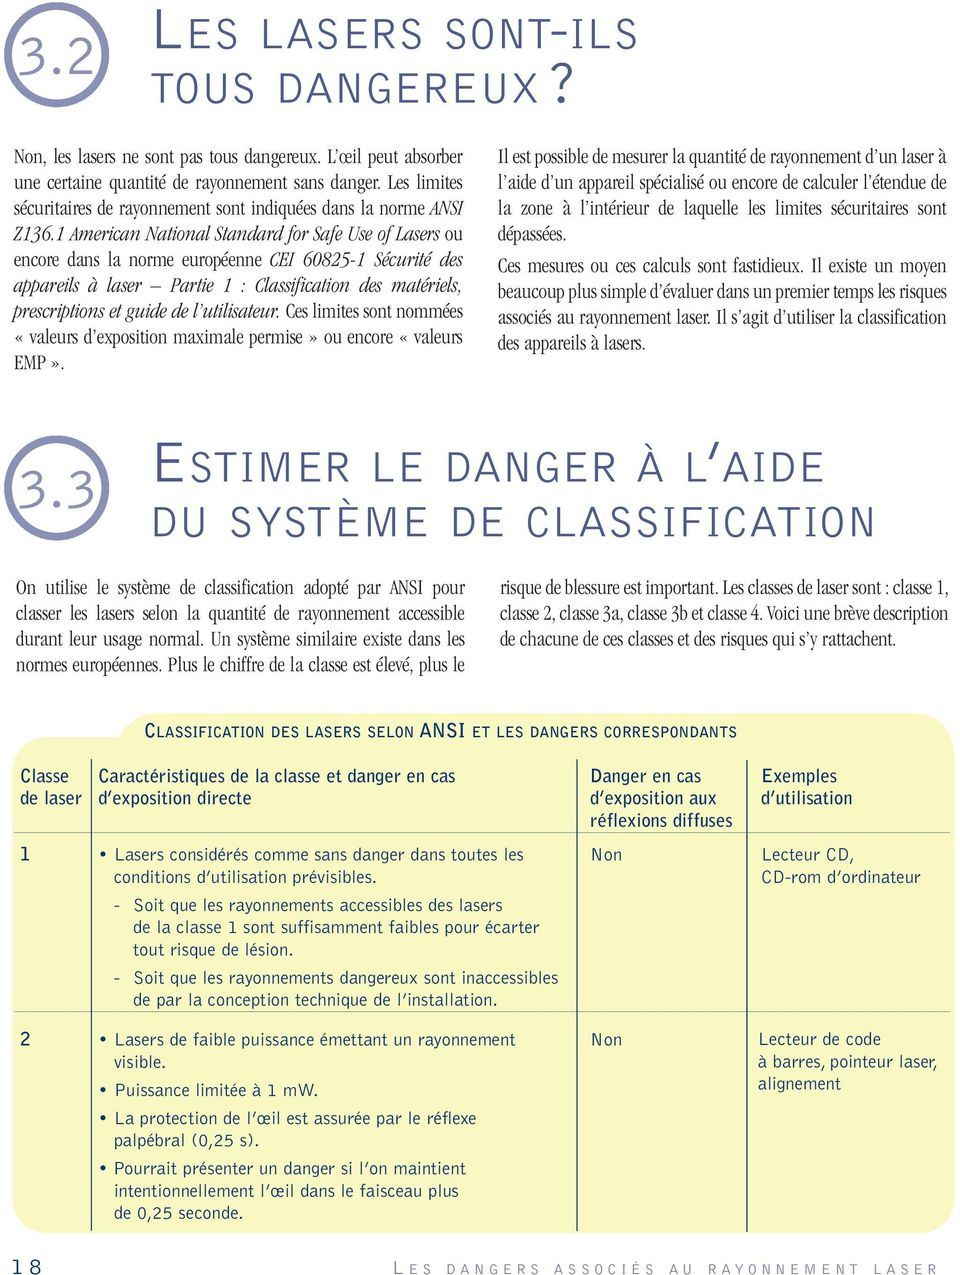 1 American National Standard for Safe Use of Lasers ou encore dans la norme européenne CEI 60825-1 Sécurité des appareils à laser Partie 1 : Classification des matériels, prescriptions et guide de l